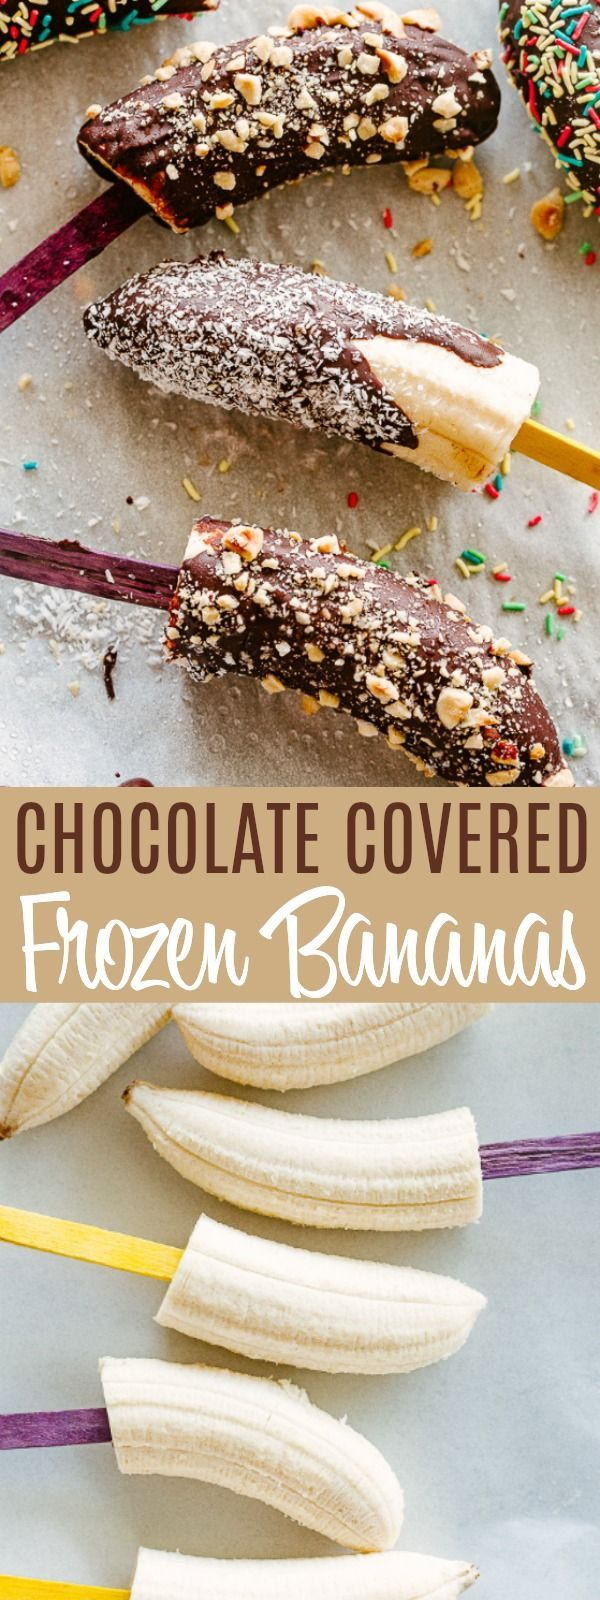 Chocolate Covered Frozen Bananas | Diethood